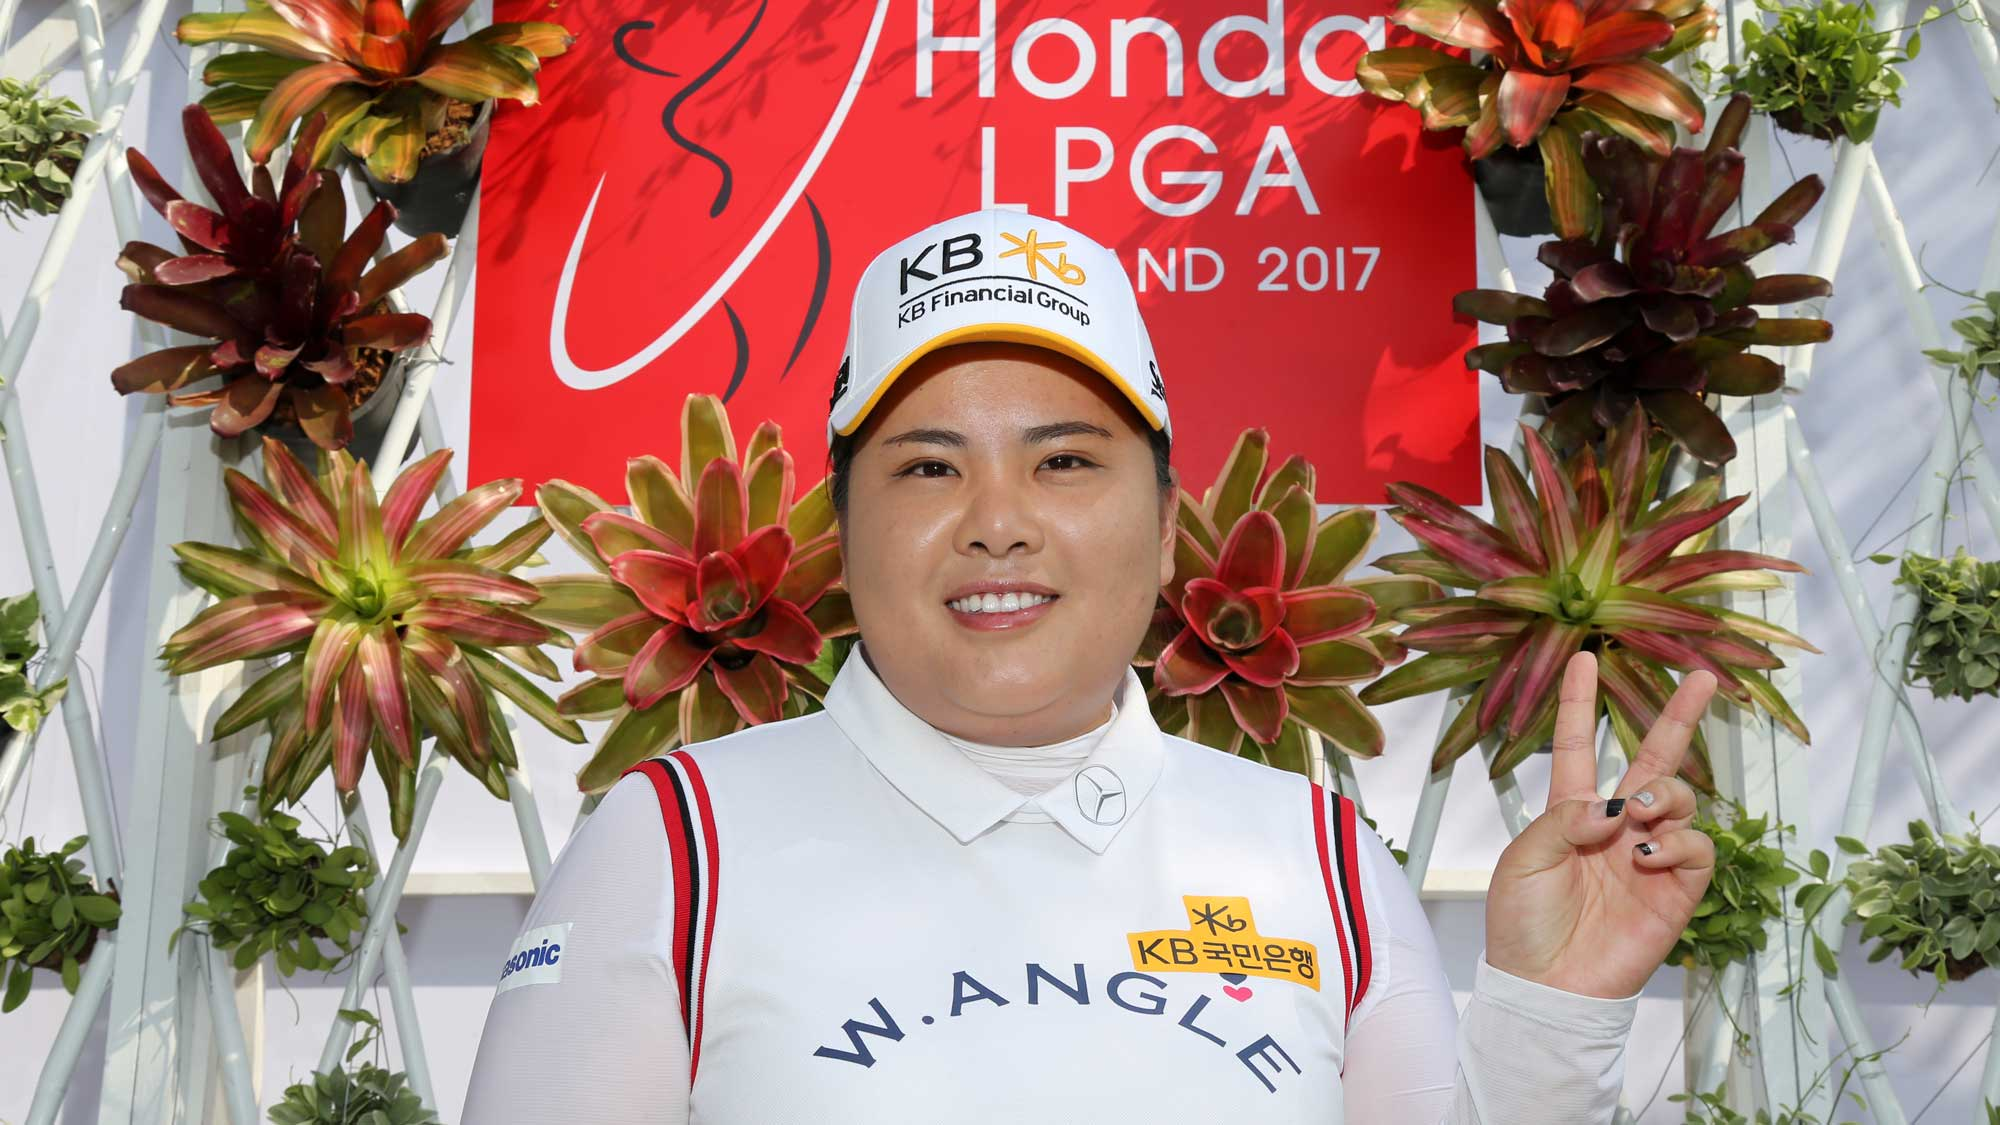 Inbee Park before the 2017 Honda LPGA Thailand